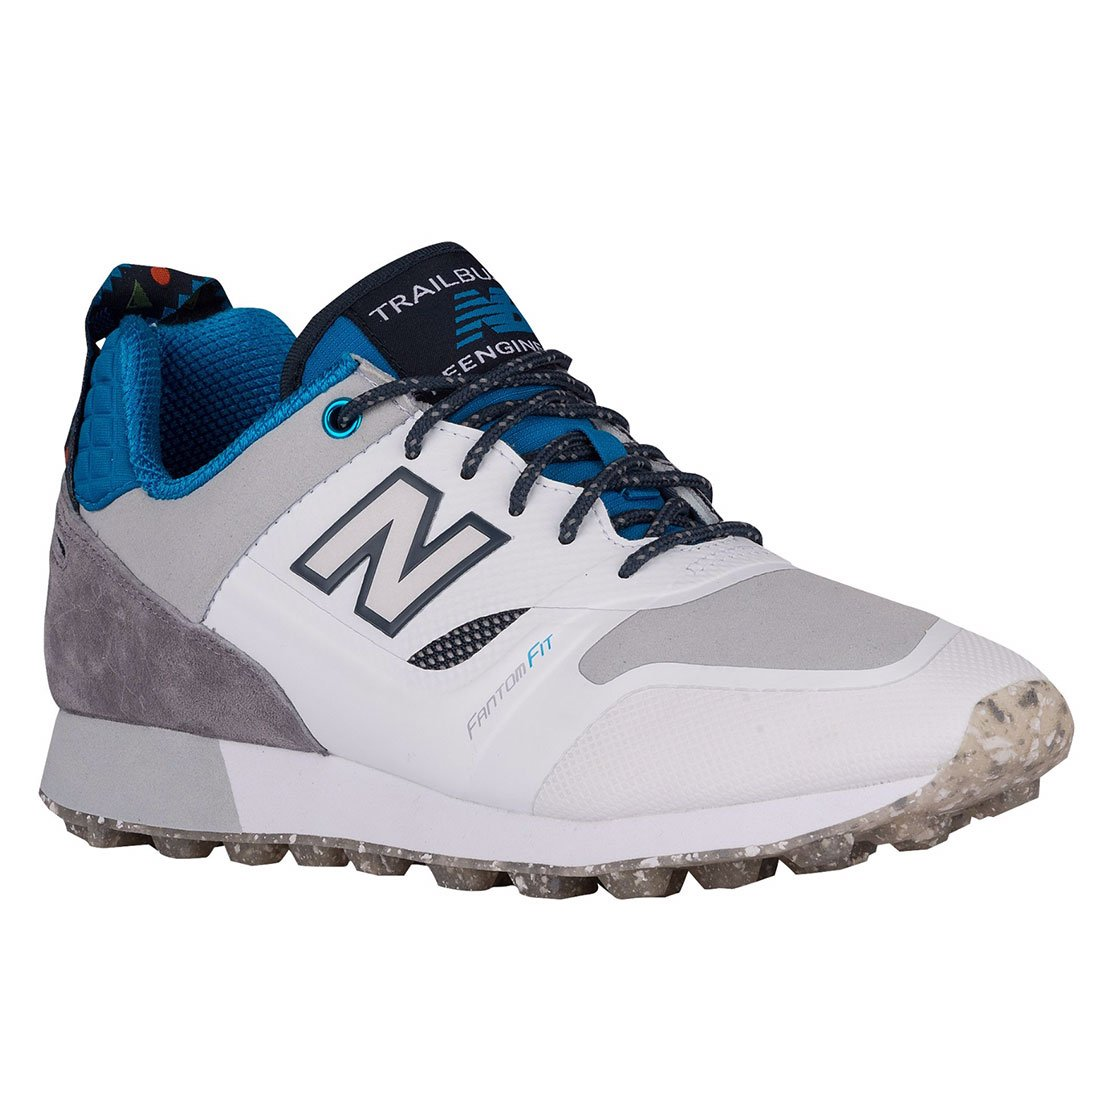 New Balance Men's Trailbuster Re-engineered